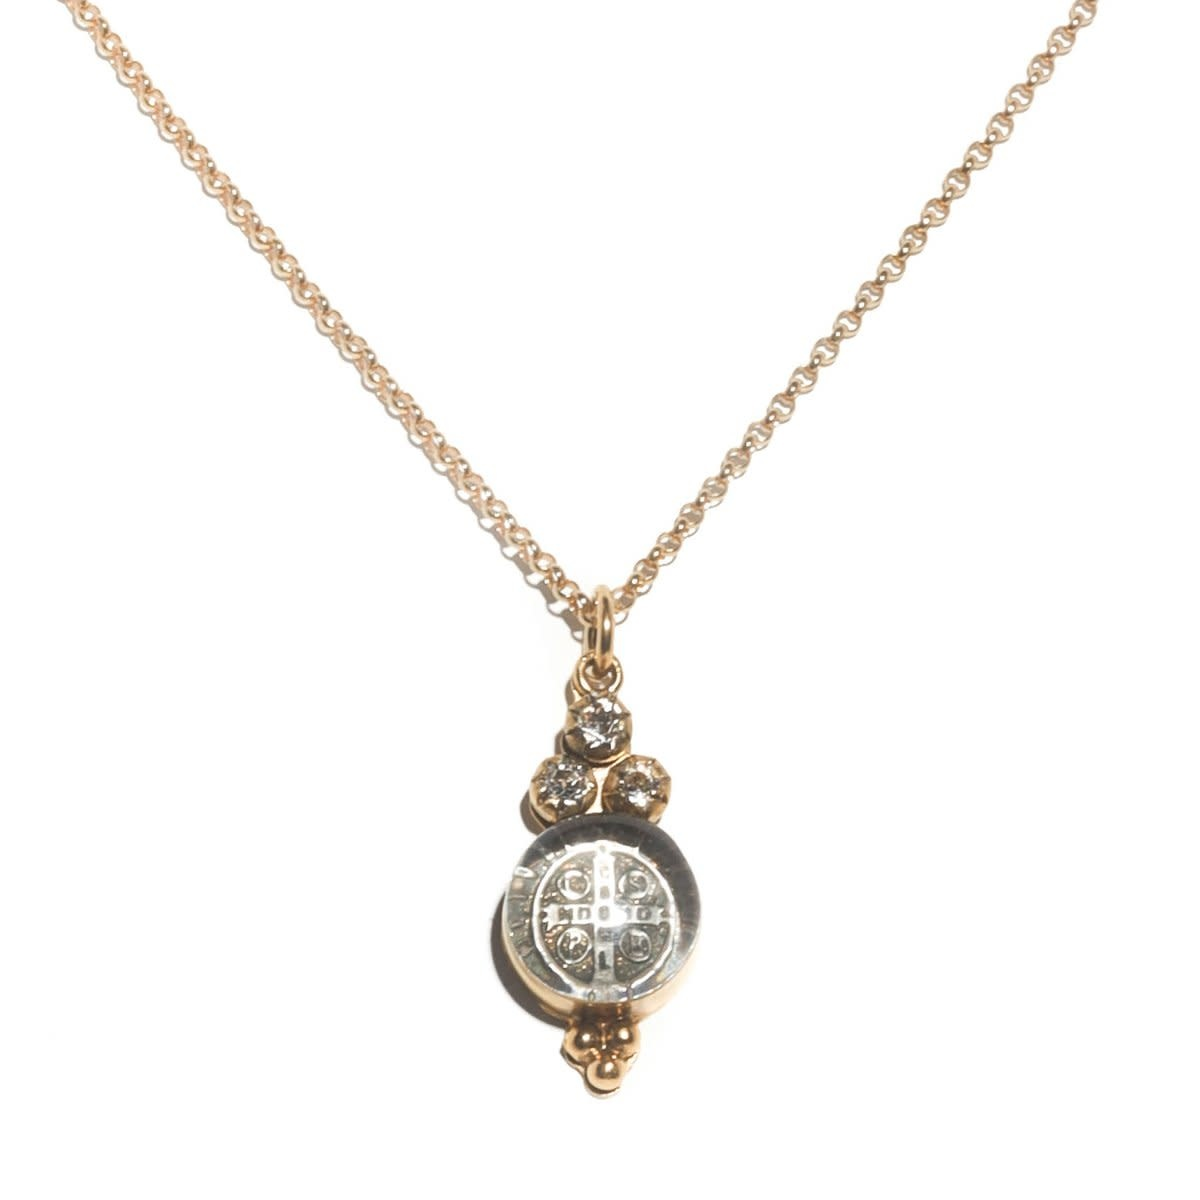 VSA Designs Lucia Charm Necklace Sterling Silver/Gold Vermeil